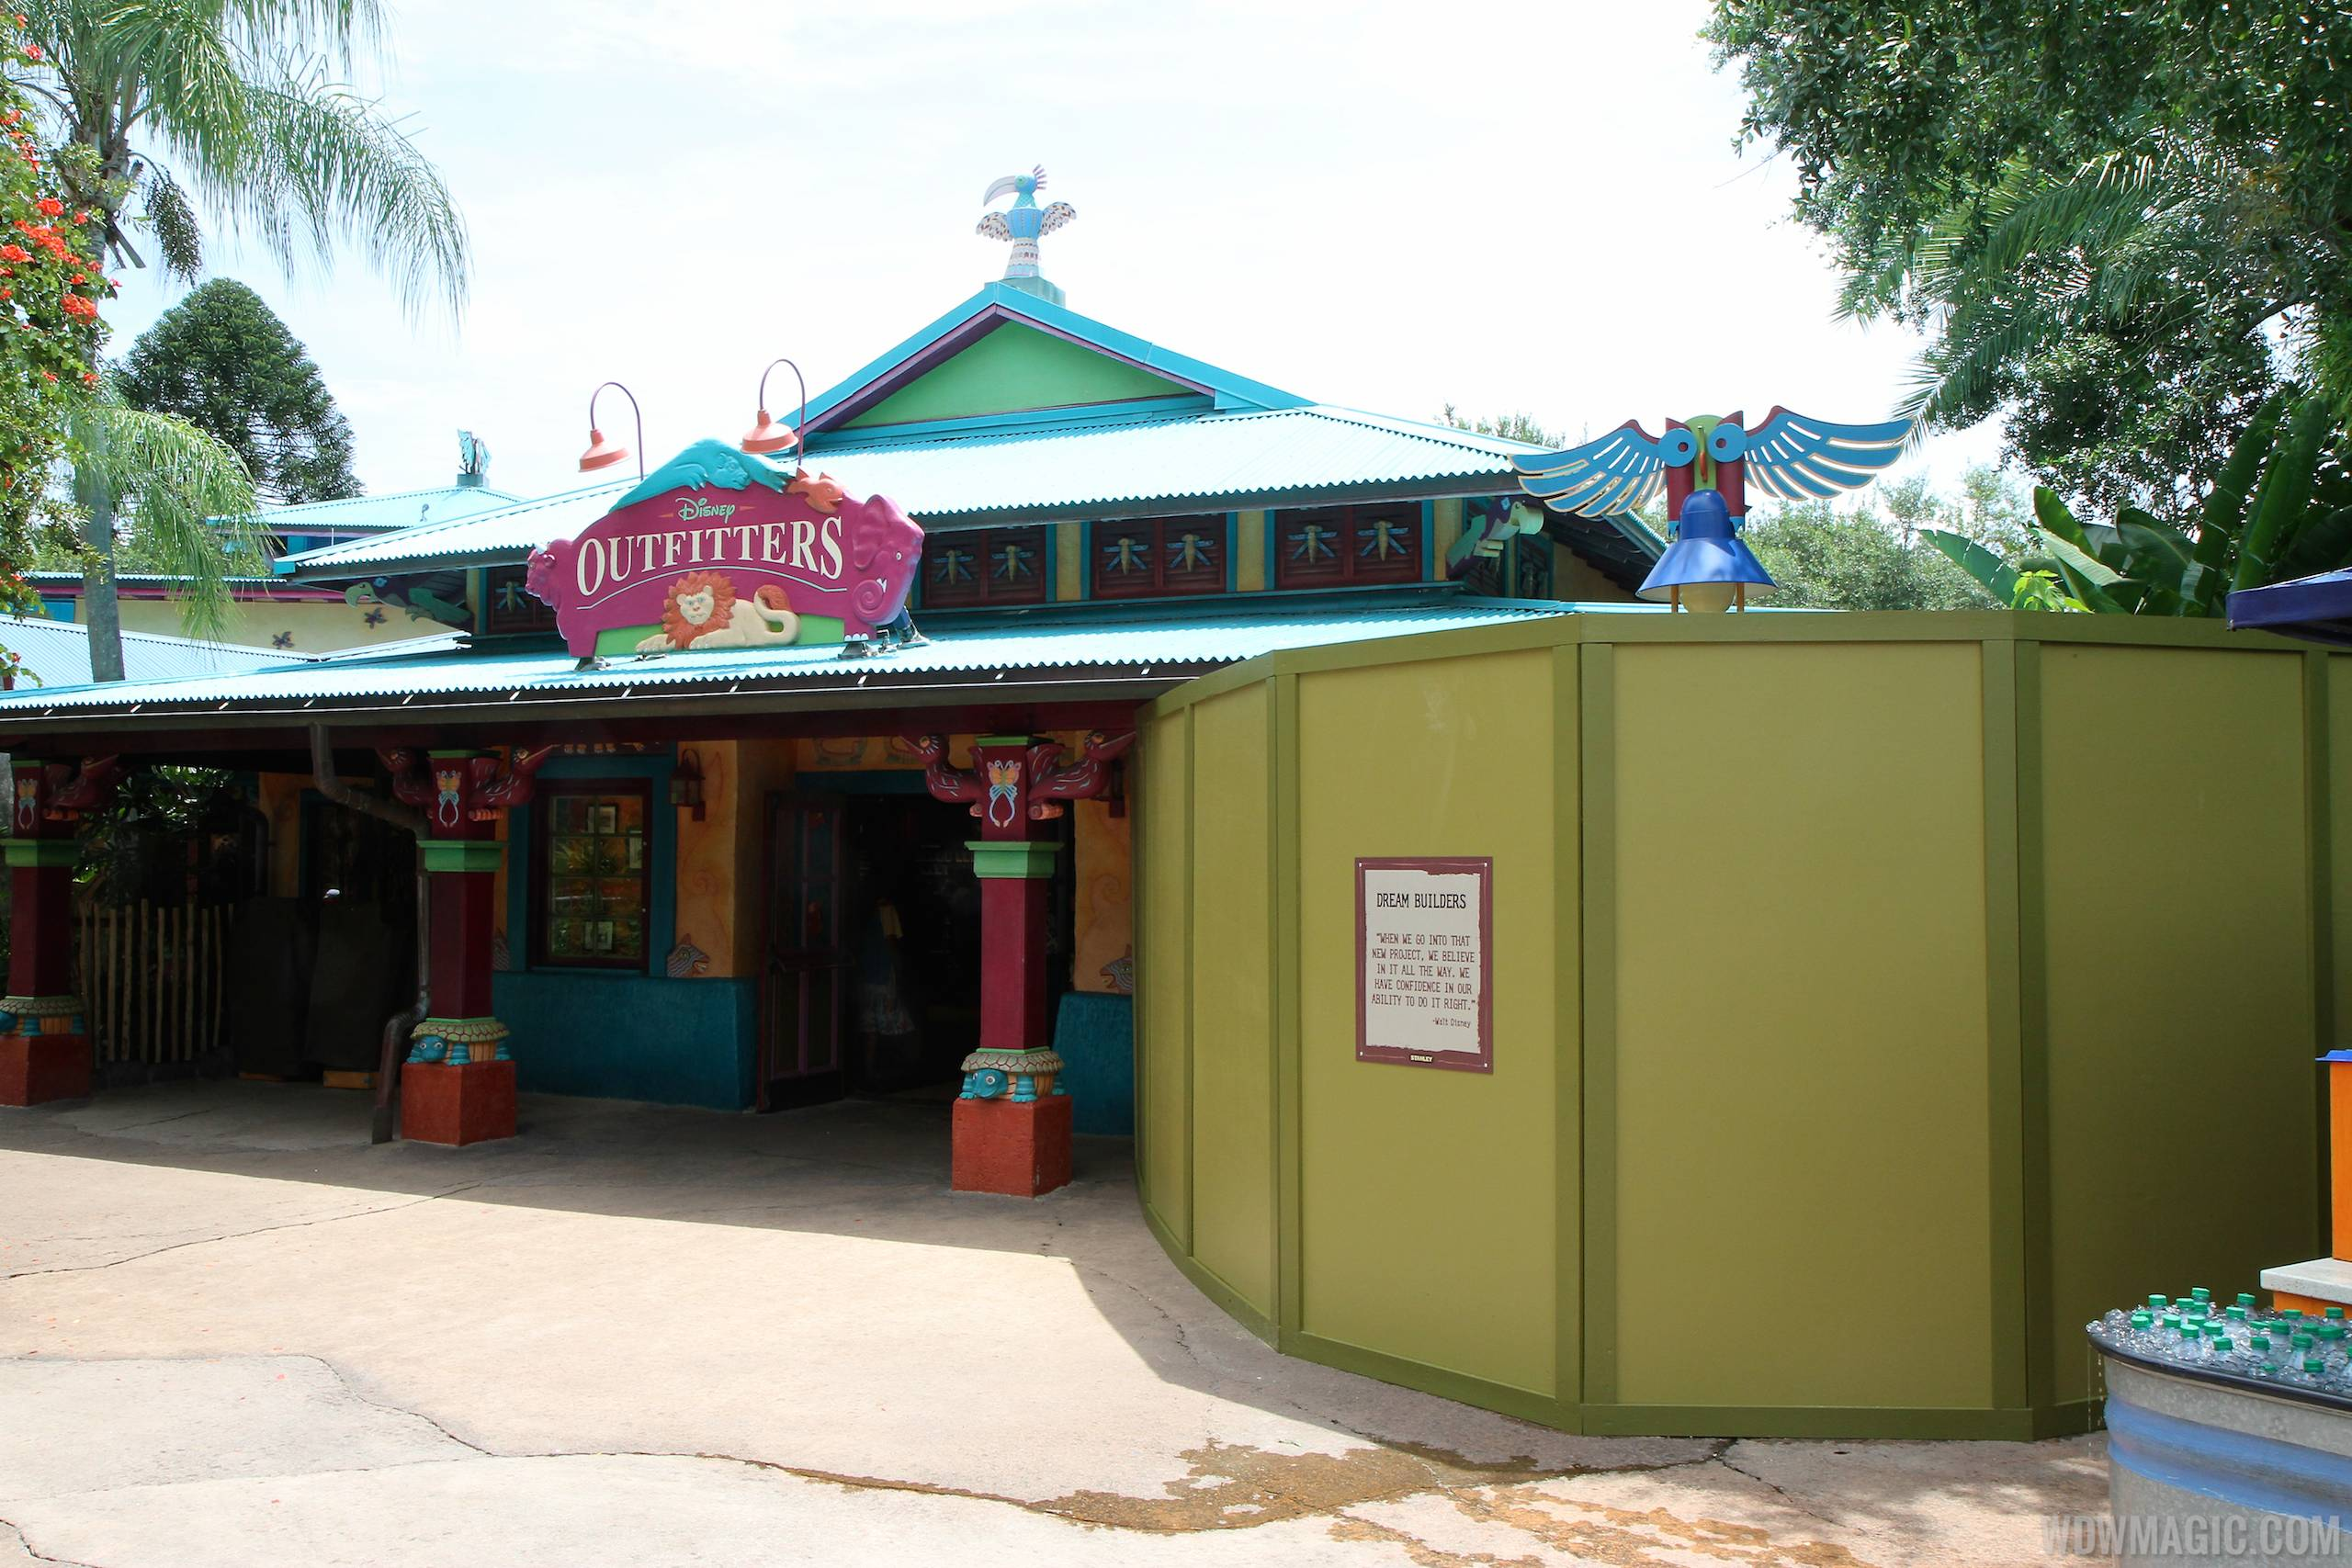 Disney Outfitters construction walls